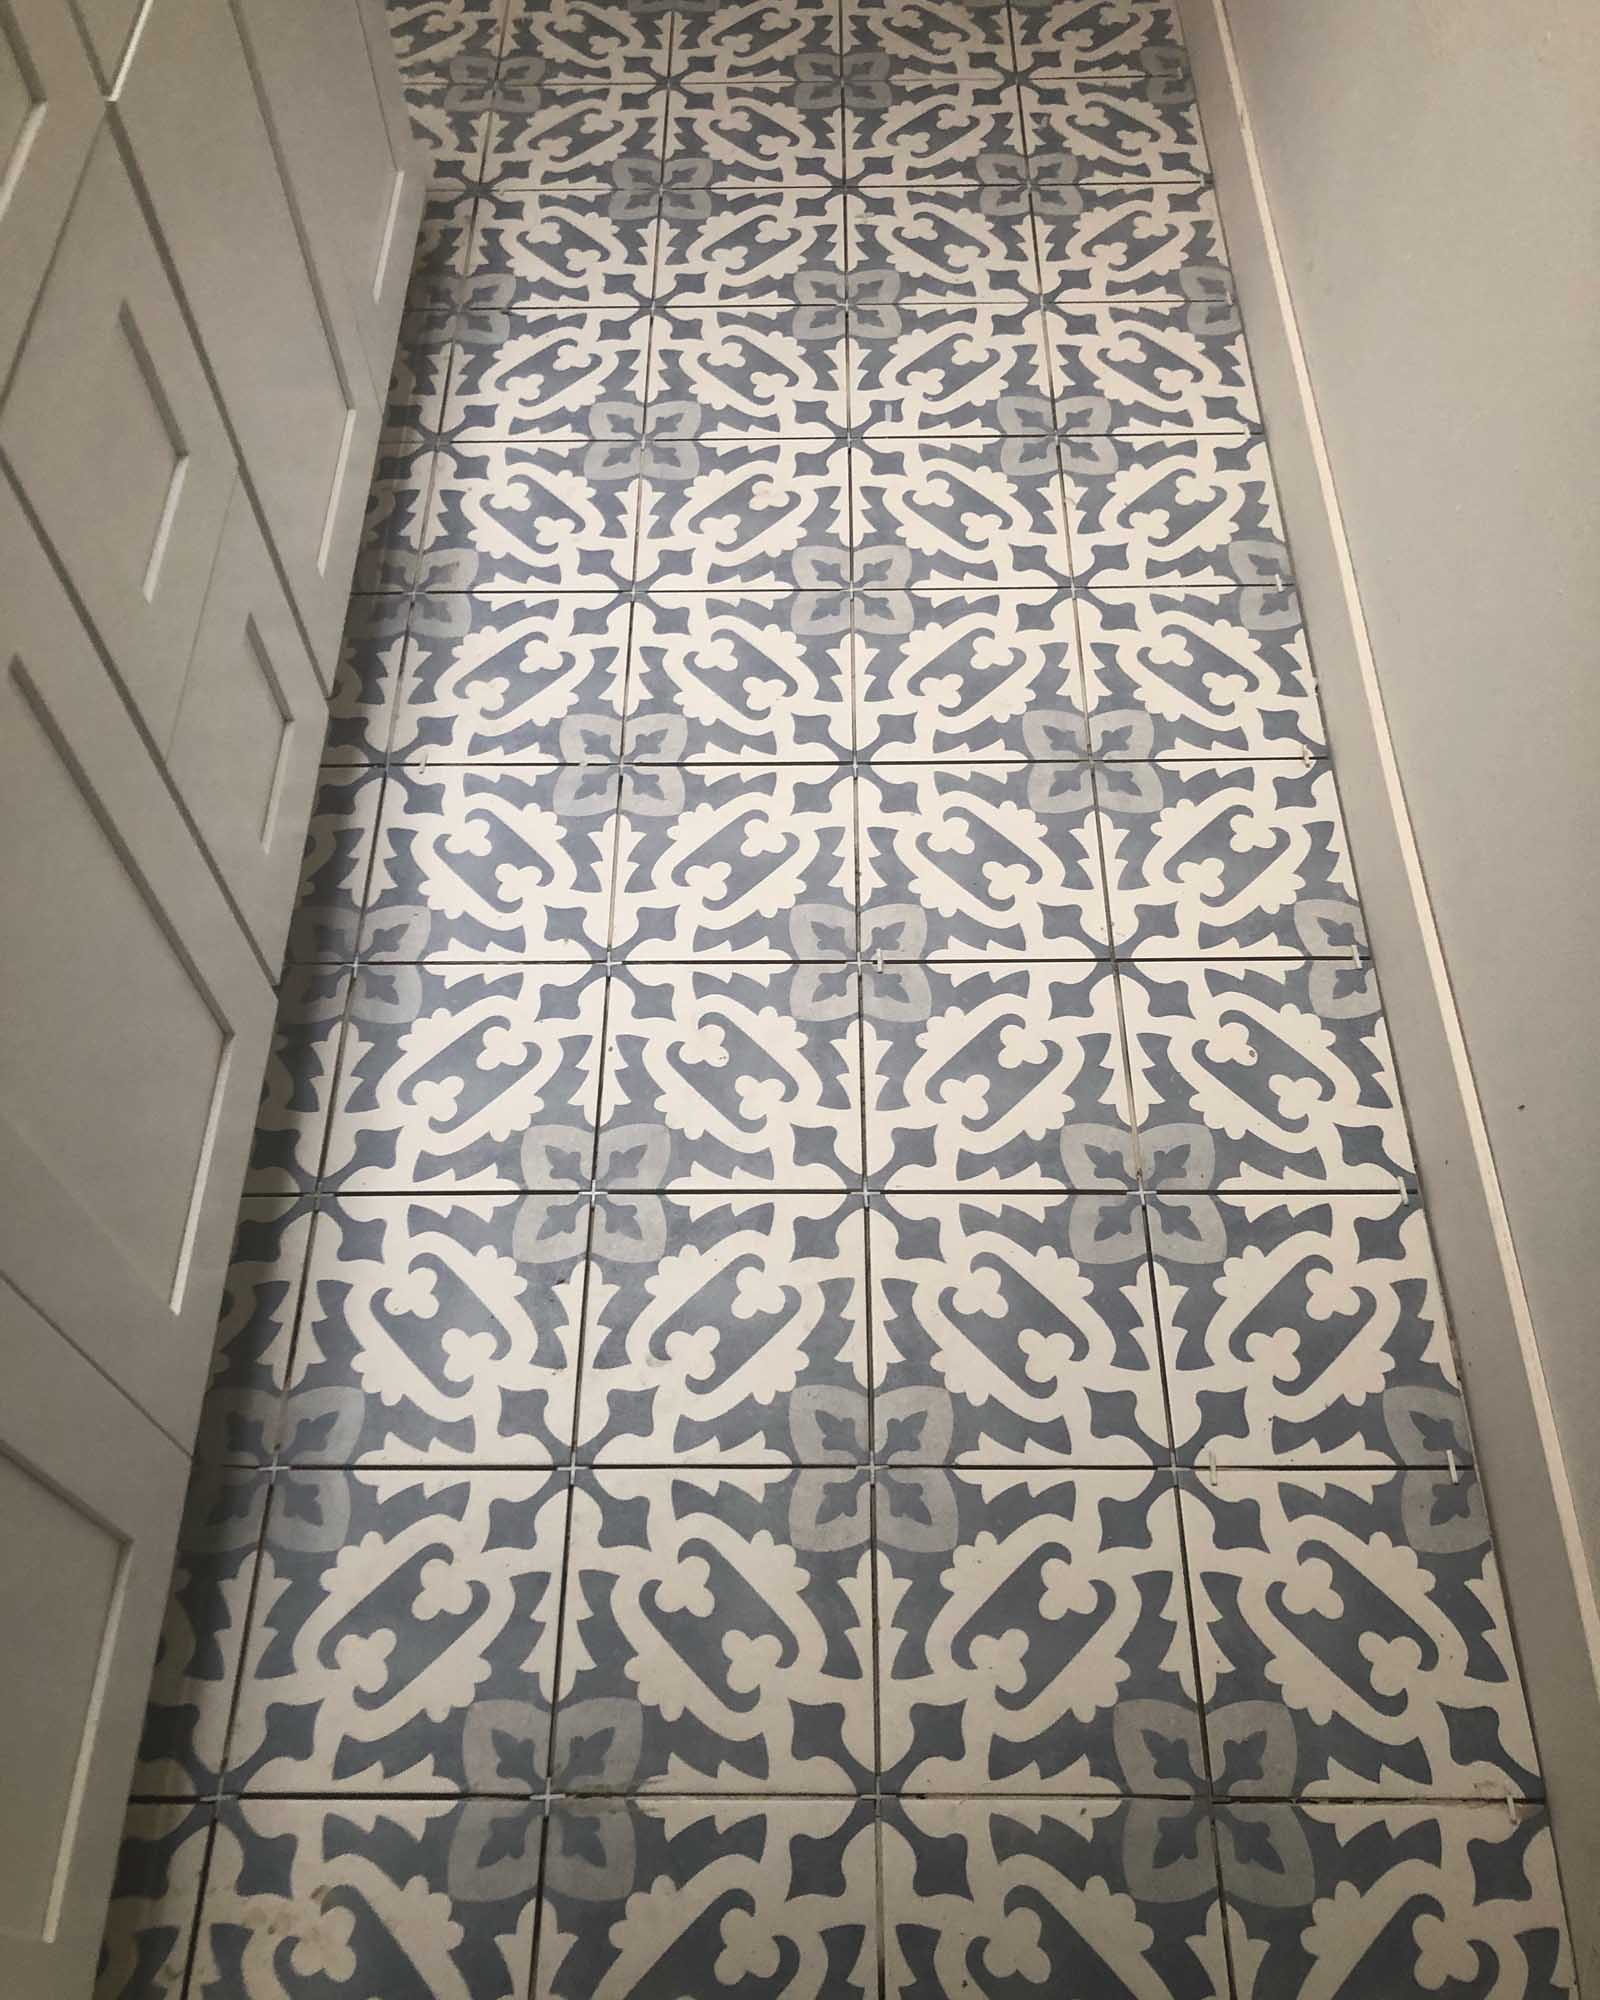 White and gray vintage decorative tile